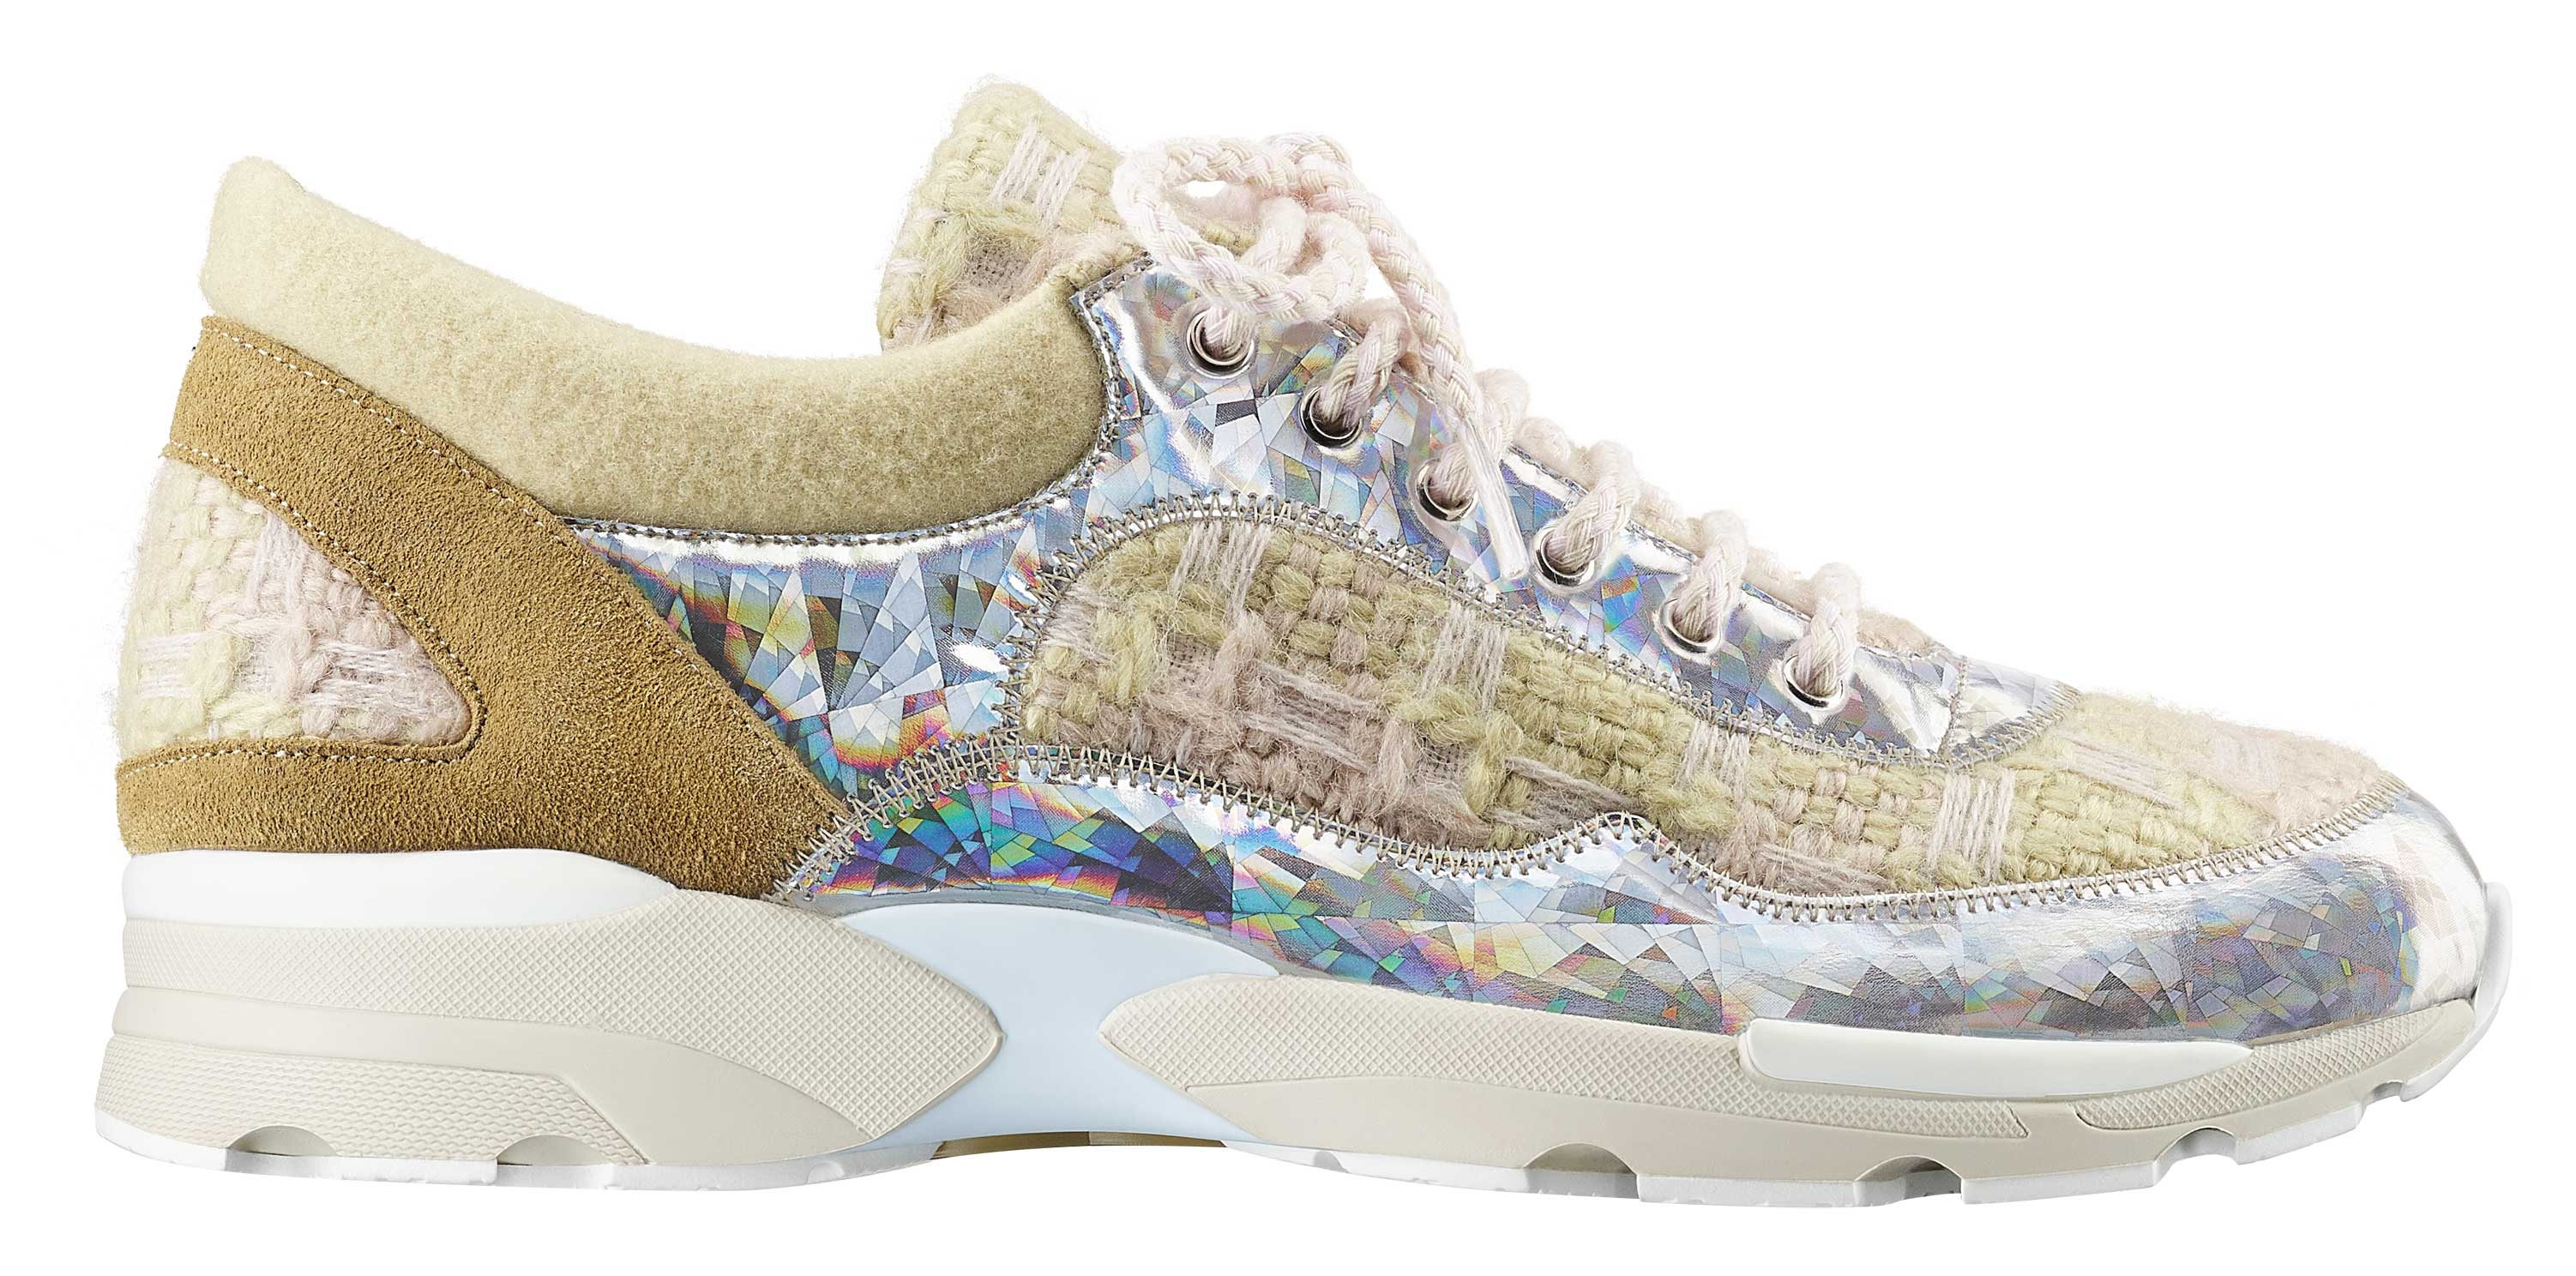 Beige-tweed,-suede,-PVC-and-rubber-sneaker_Basket-en-tweed-beige,-daim,-PVC-et-caoutchouc